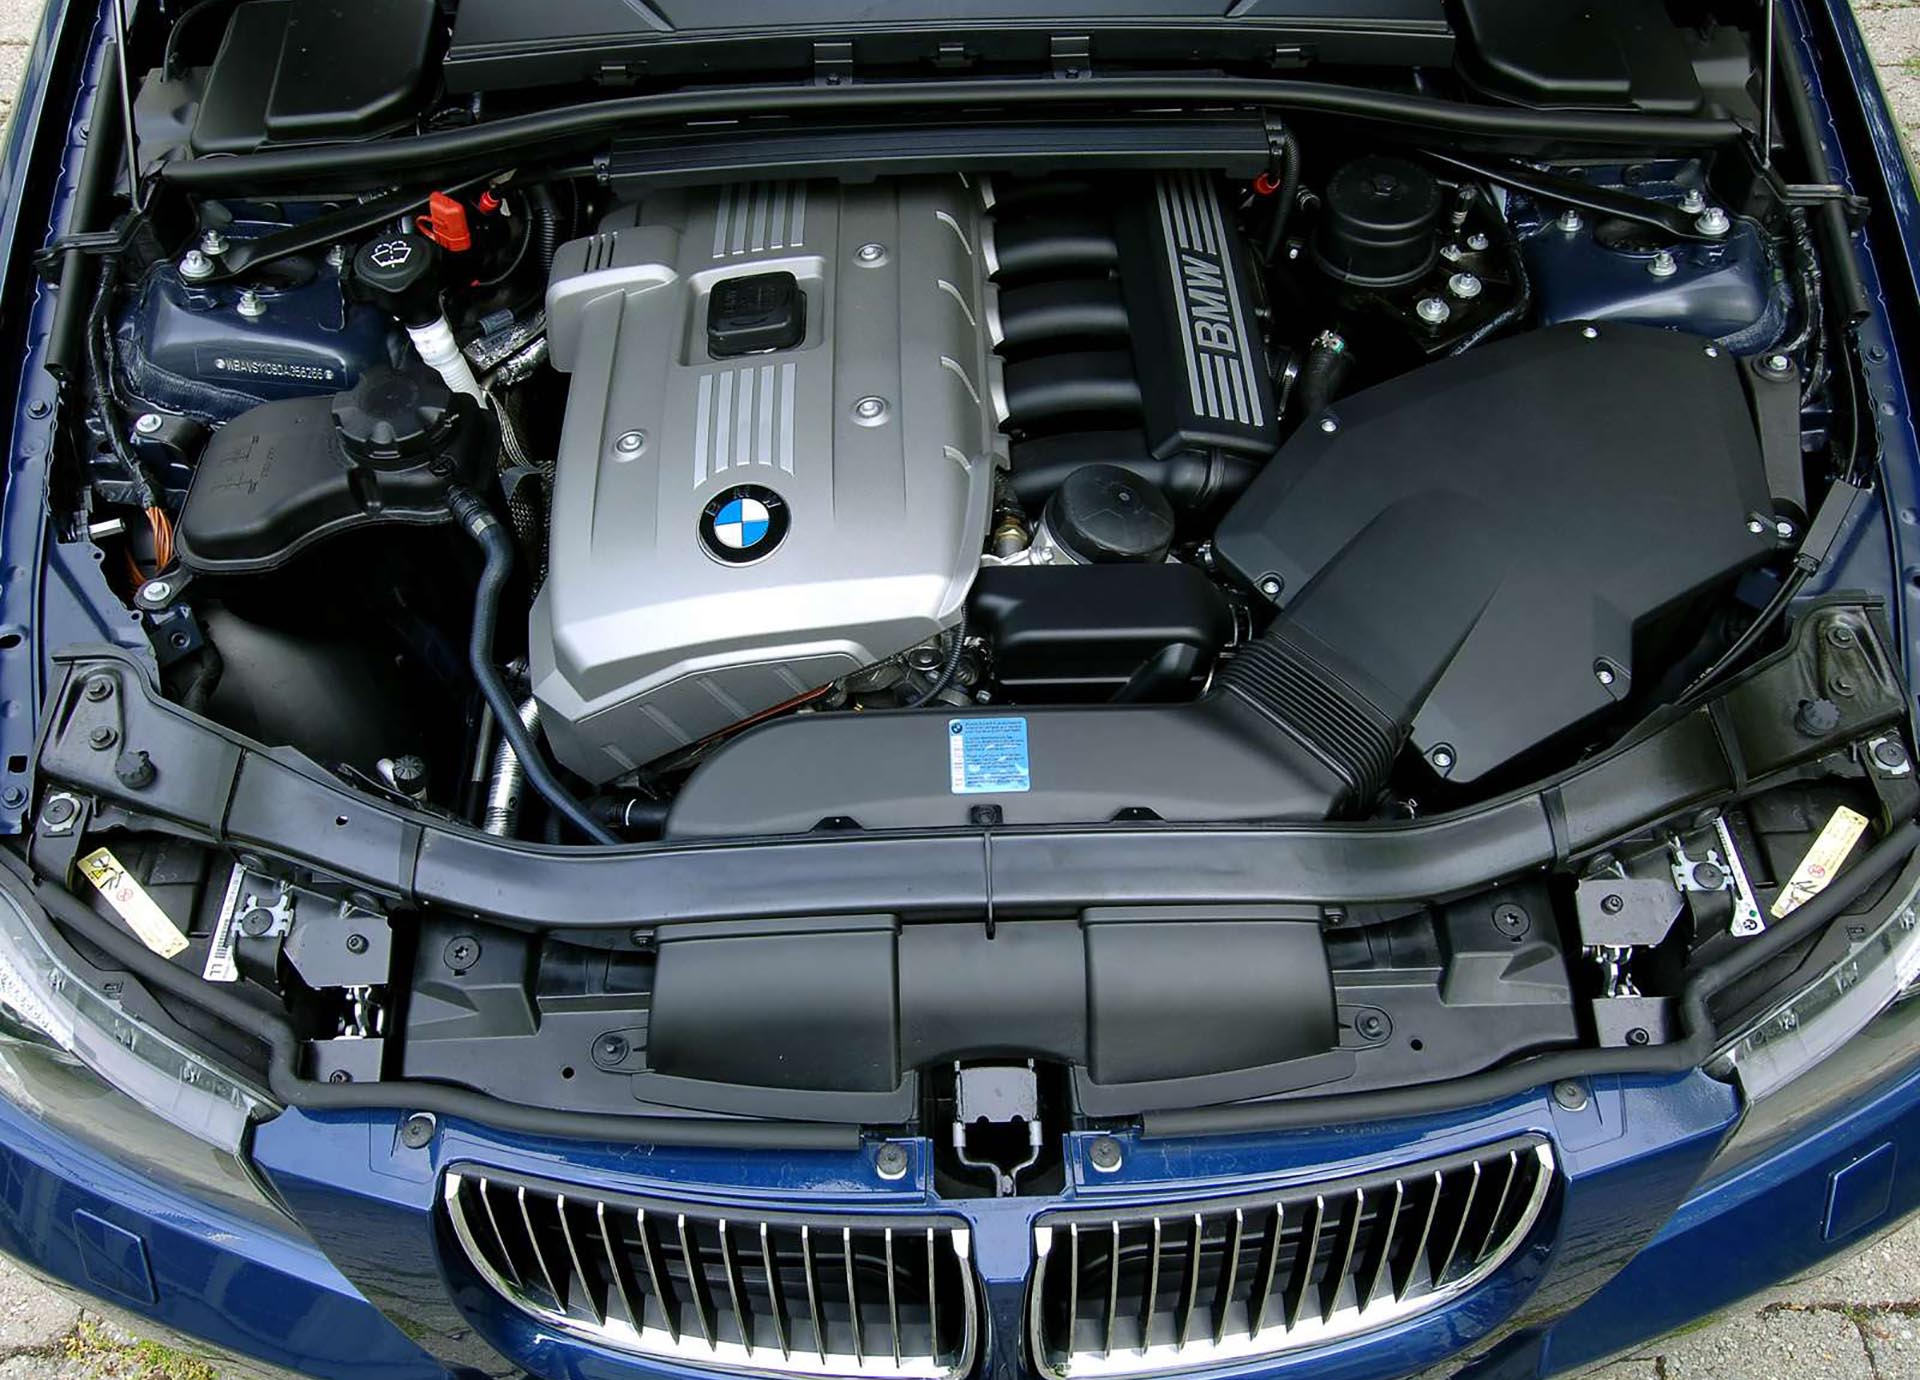 11_BMW E90 330i engine